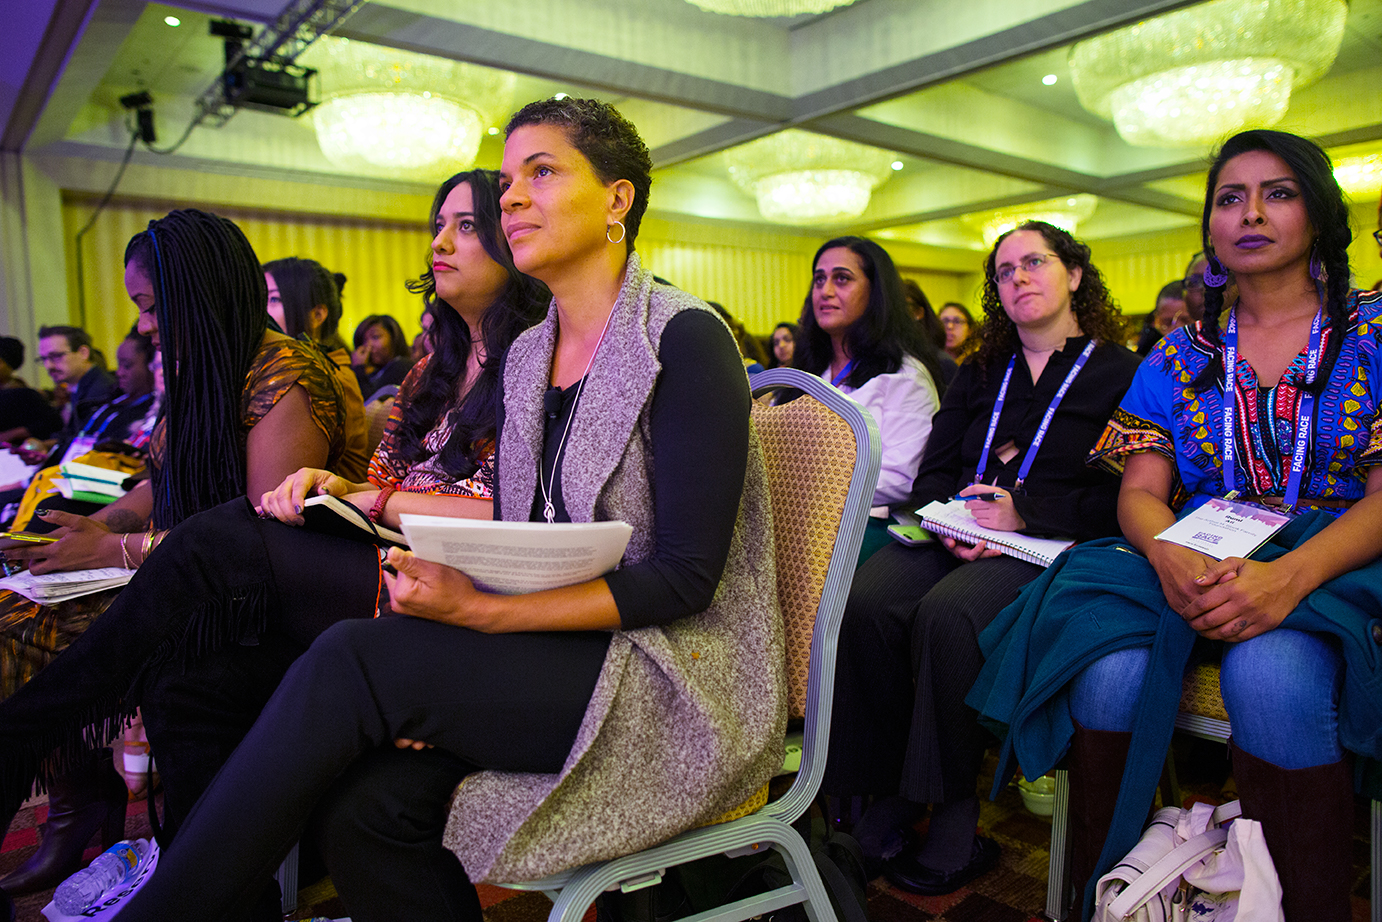 """Michelle Alexander (third from left;  The New Jim Crow ) and other conference attendees listen to a speaker at Facing Race 2016 before the plenary session, """"Multiracial Movement for Black Lives."""" To her right are Isa Noyola ( Transgender Law Center ) and Alicia Garza ( National Domestic Workers Alliance  and #BlackLivesMatter), Atlanta, GA, 11 November"""